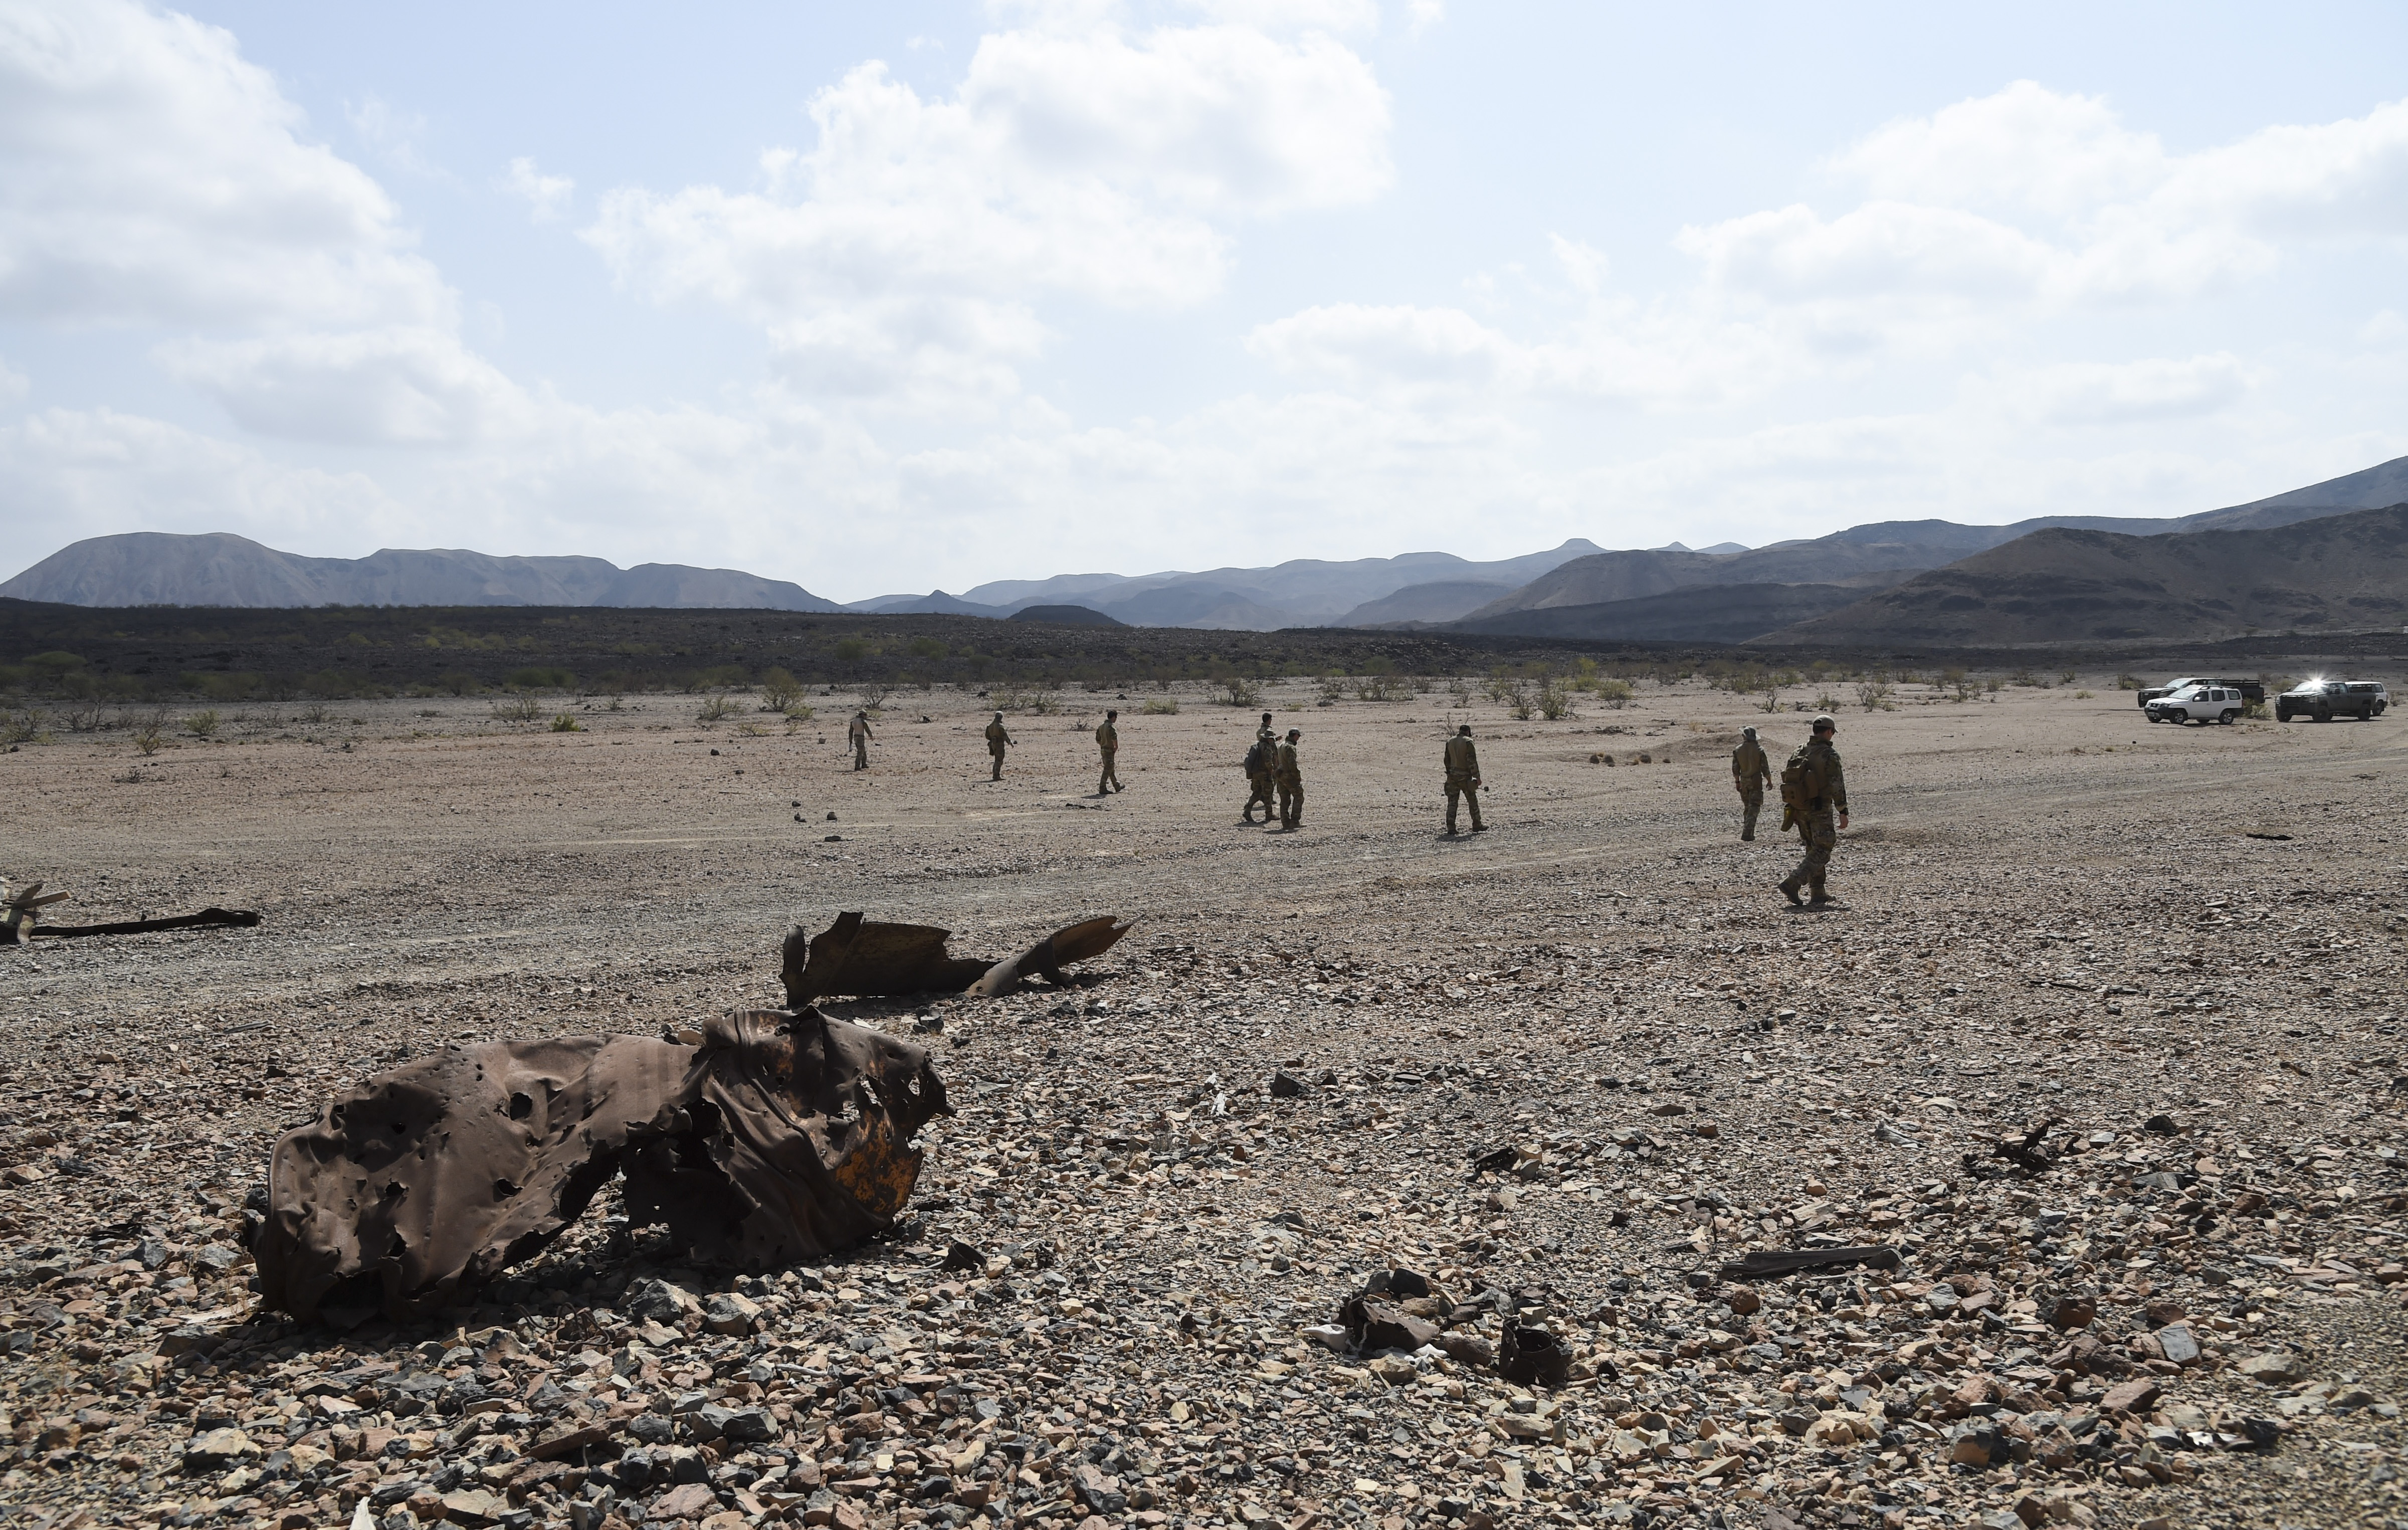 U.S. Navy Sailors with Explosive Ordnance Disposal (EOD) Mobile Unit 6, Task Force Sparta, move their line forward while inspecting a section of a range, Oct. 22, 2016, in Djibouti. During this operation, Navy and French EOD personnel worked bilaterally to safely clear their respective areas of unexploded ordnance. (U.S. Air Force photo by Staff Sgt. Penny Snoozy)